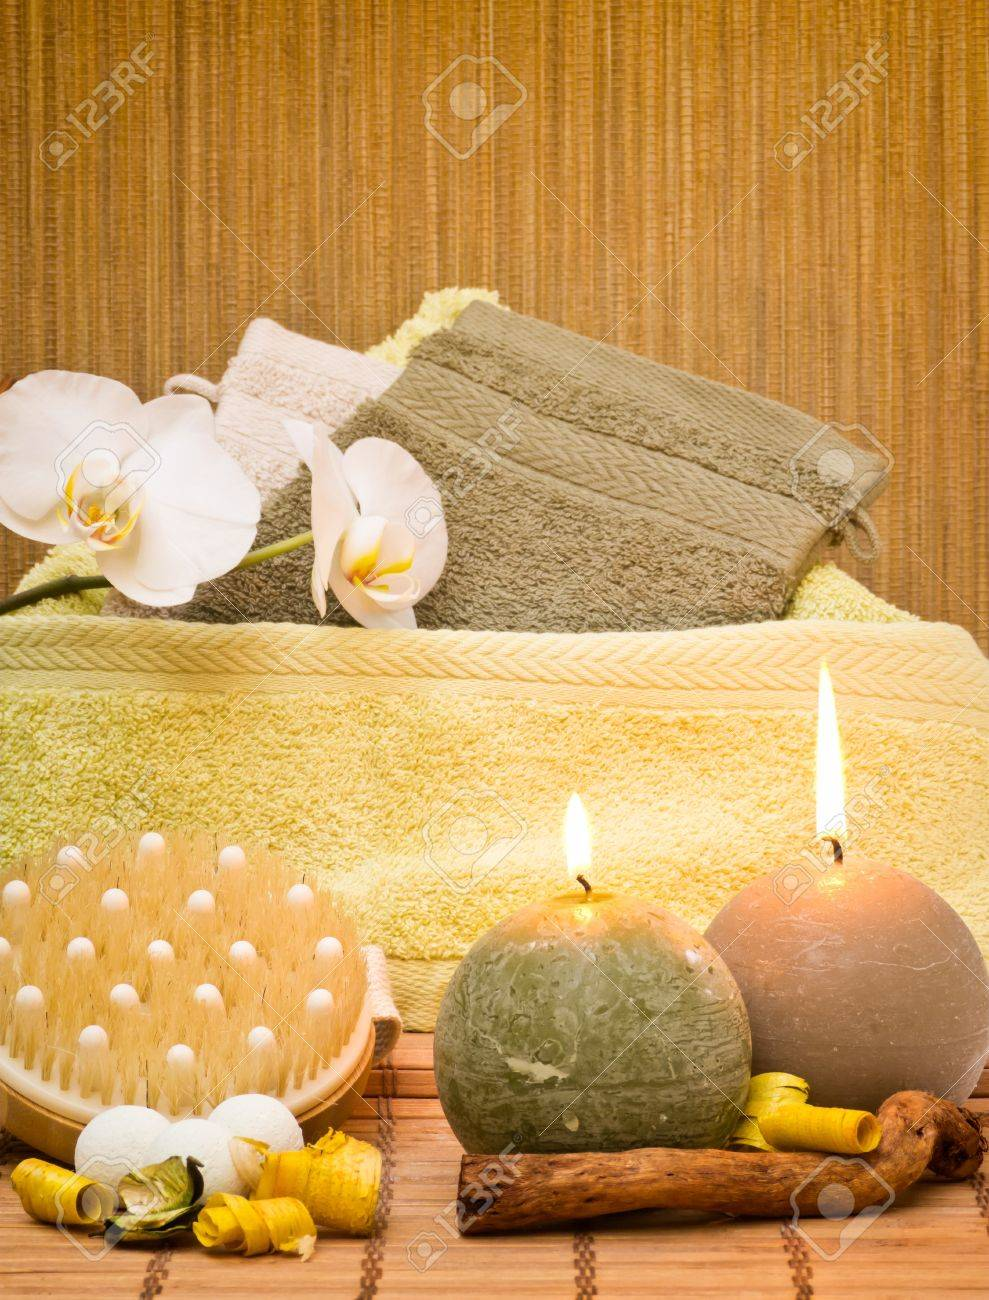 spa decoration from various objects with candles stock photo